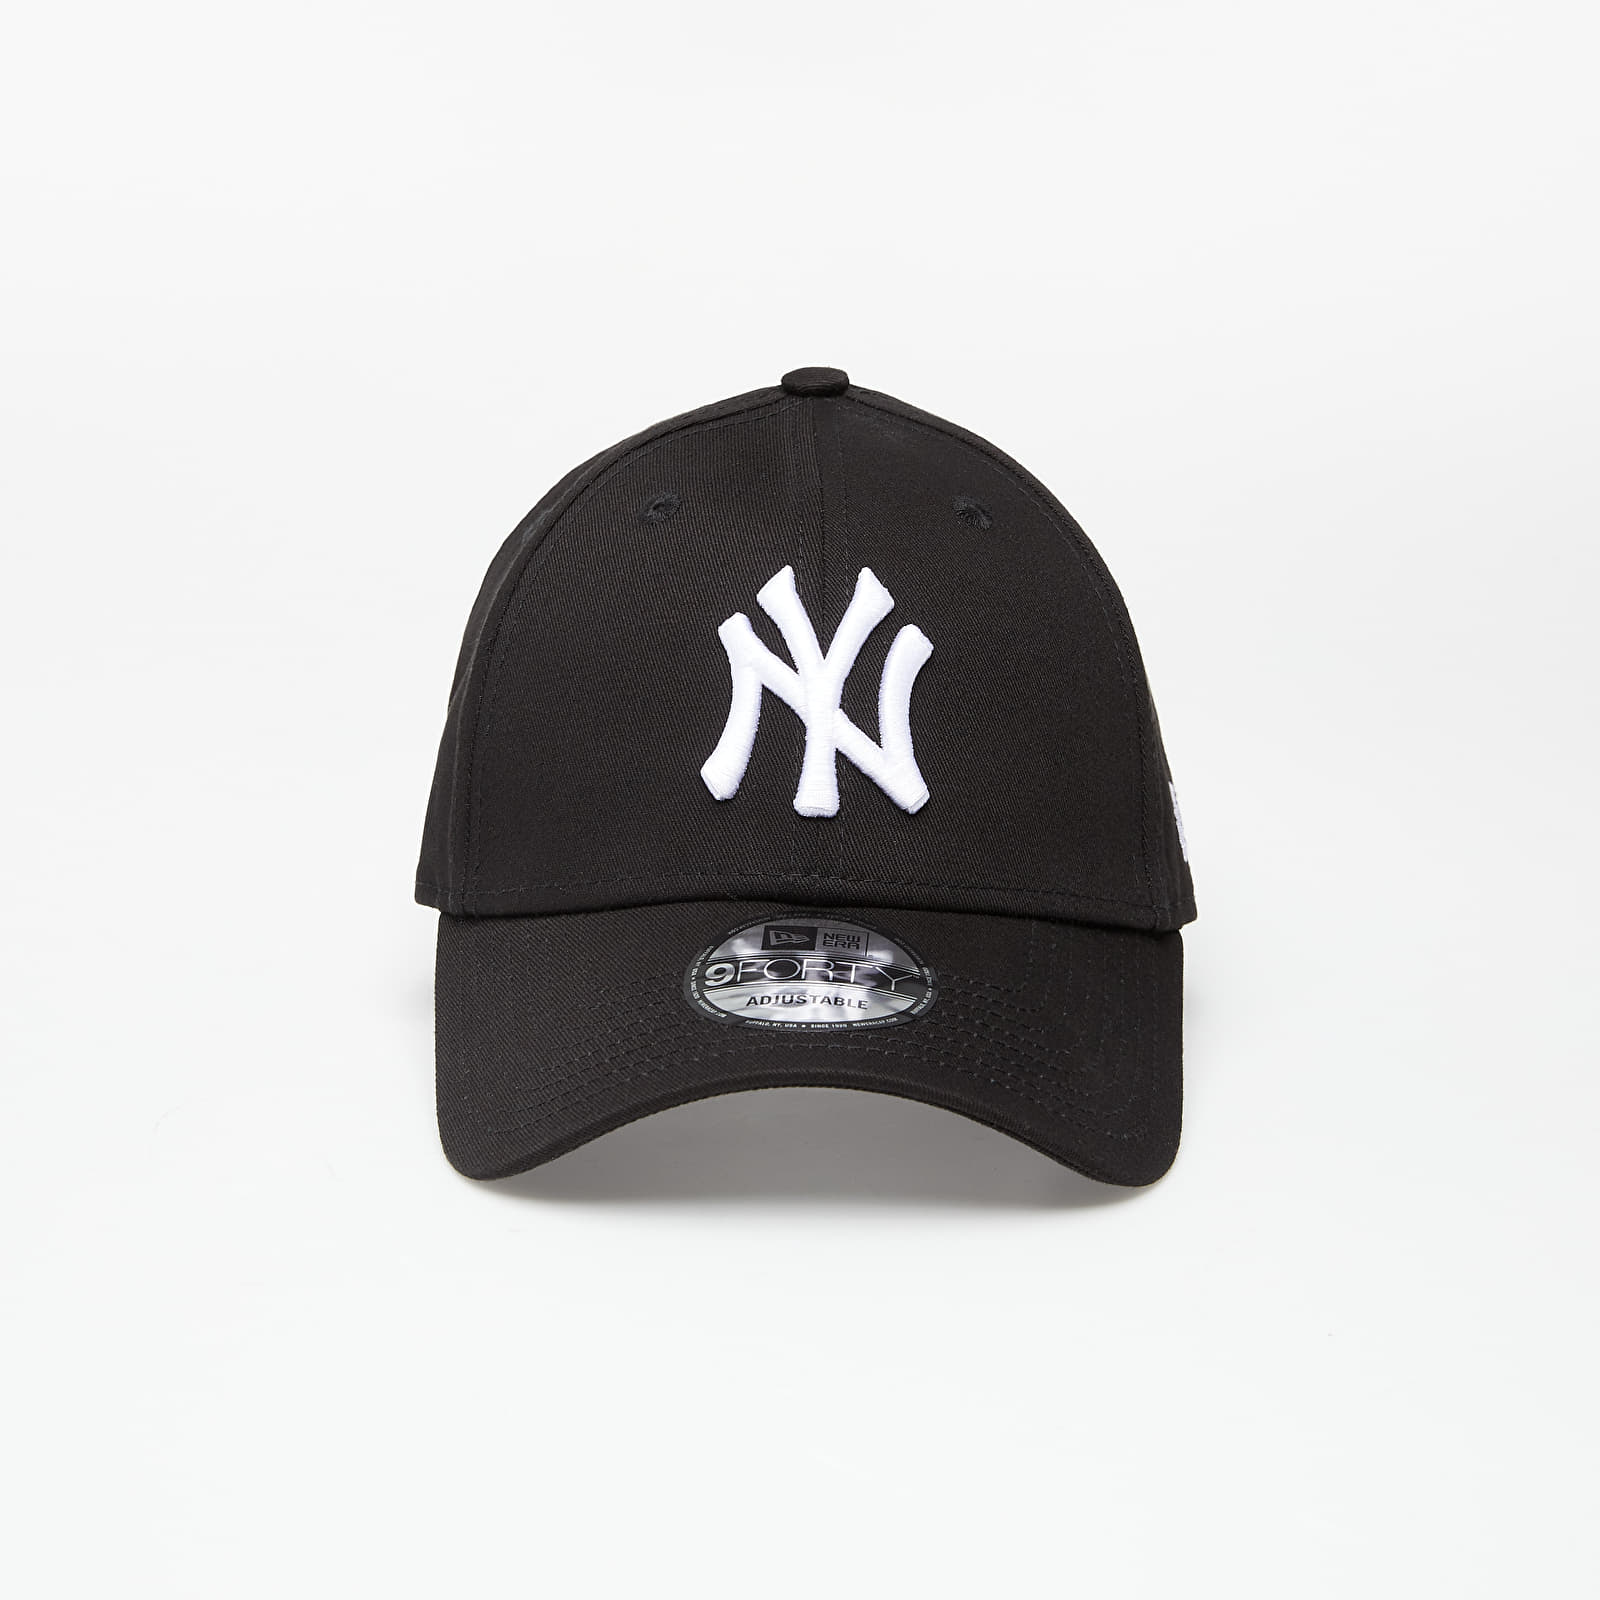 Caps New Era Cap 9Forty Mlb League Basic New York Yankees Black/ White